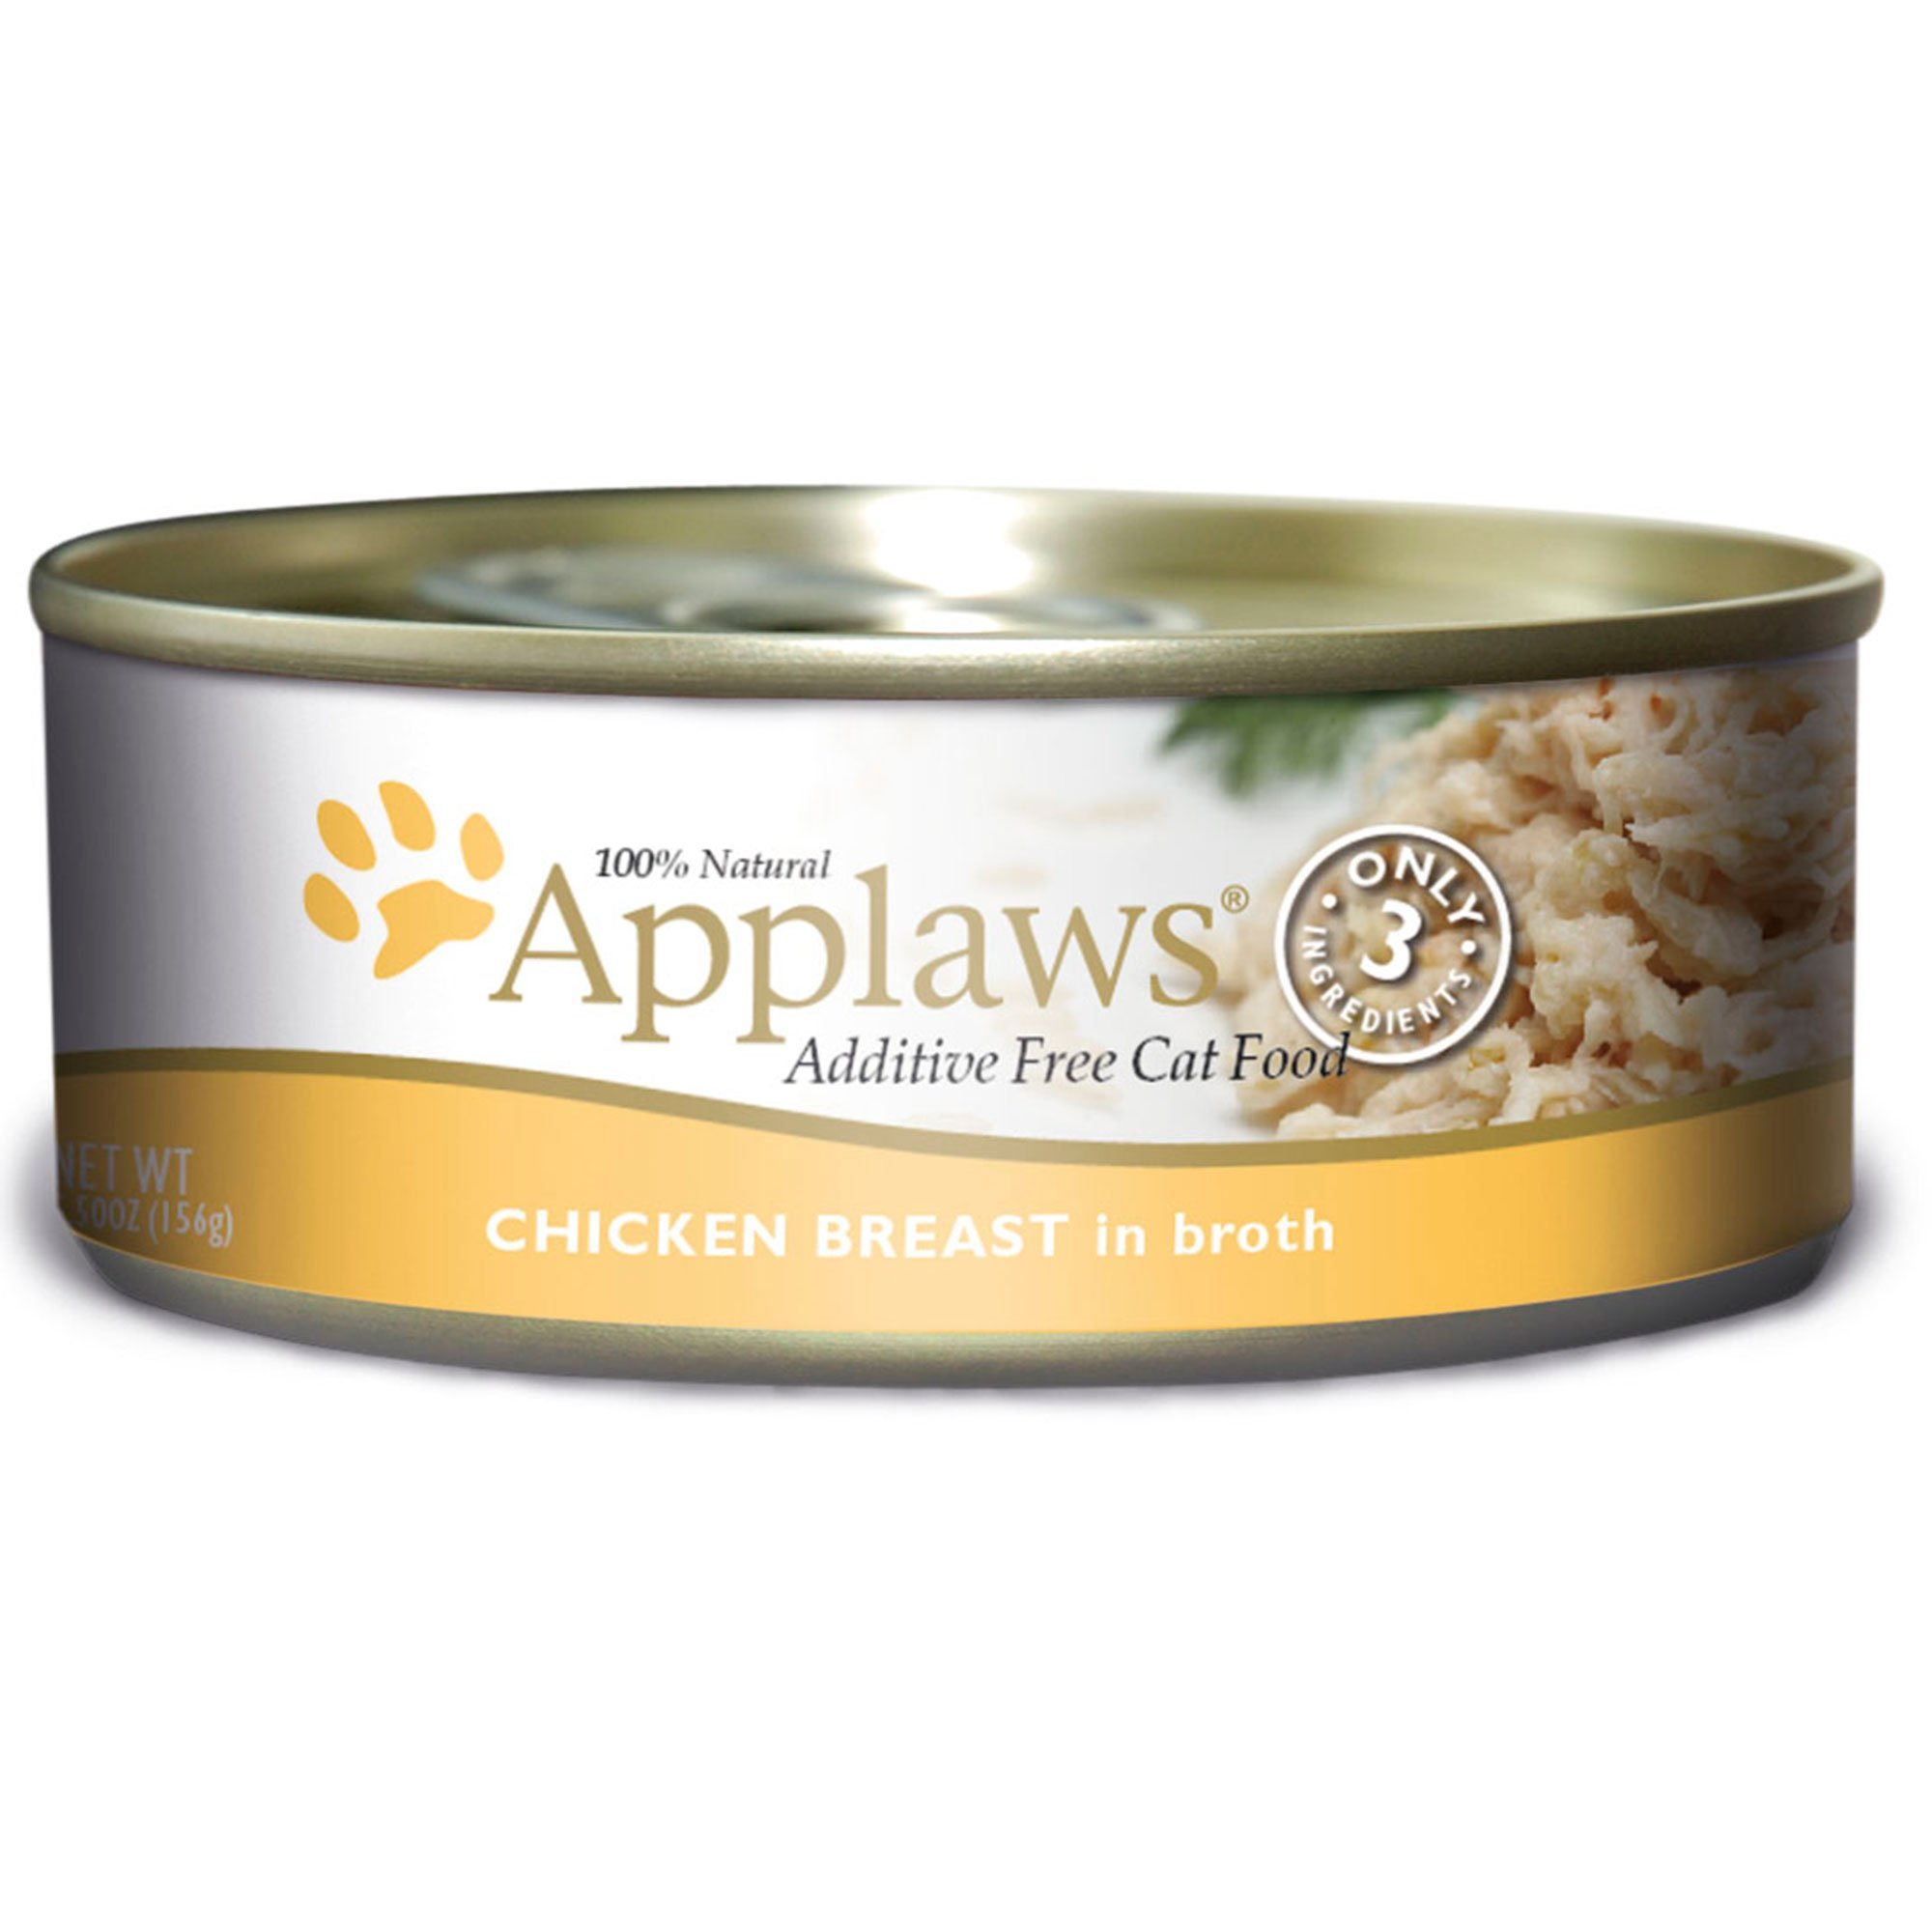 Applaws Chicken Breast Canned Cat Food Petco